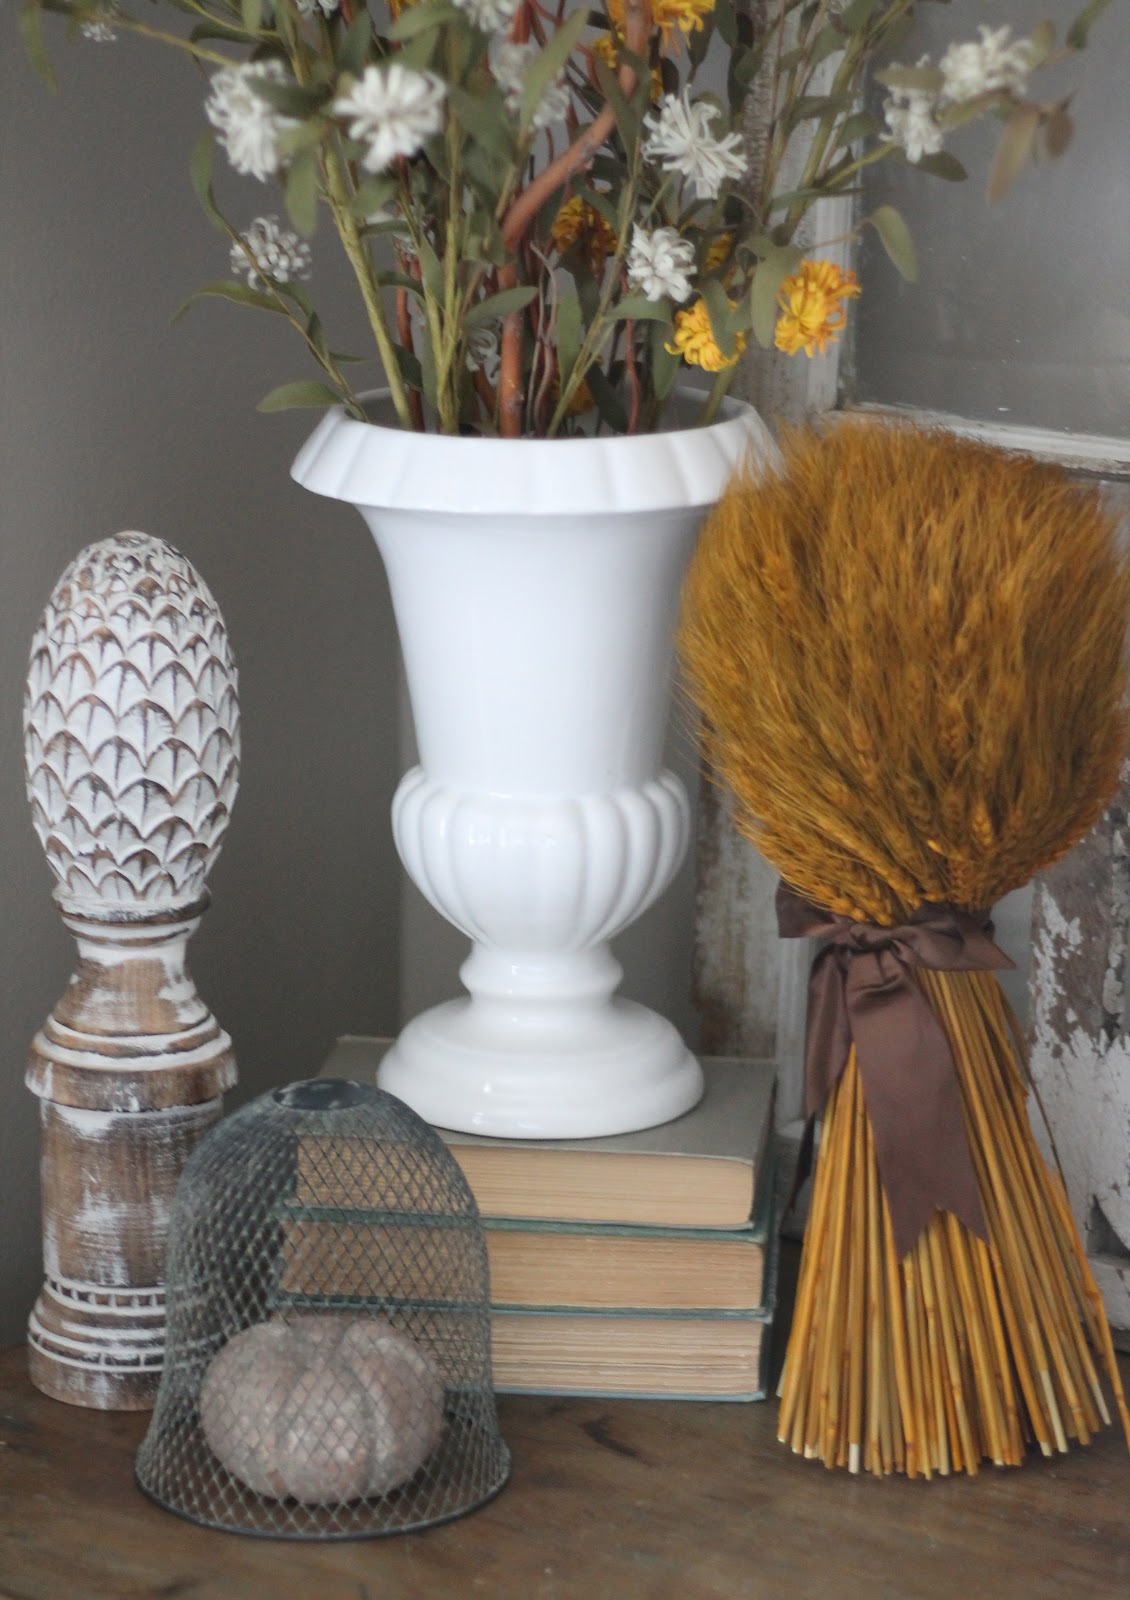 12th and white autumns arrival i was so thrilled to find this neutral fall vase filler at tj maxx i love warm colors during the fall but sometimes i dont want tons of bright orange reviewsmspy